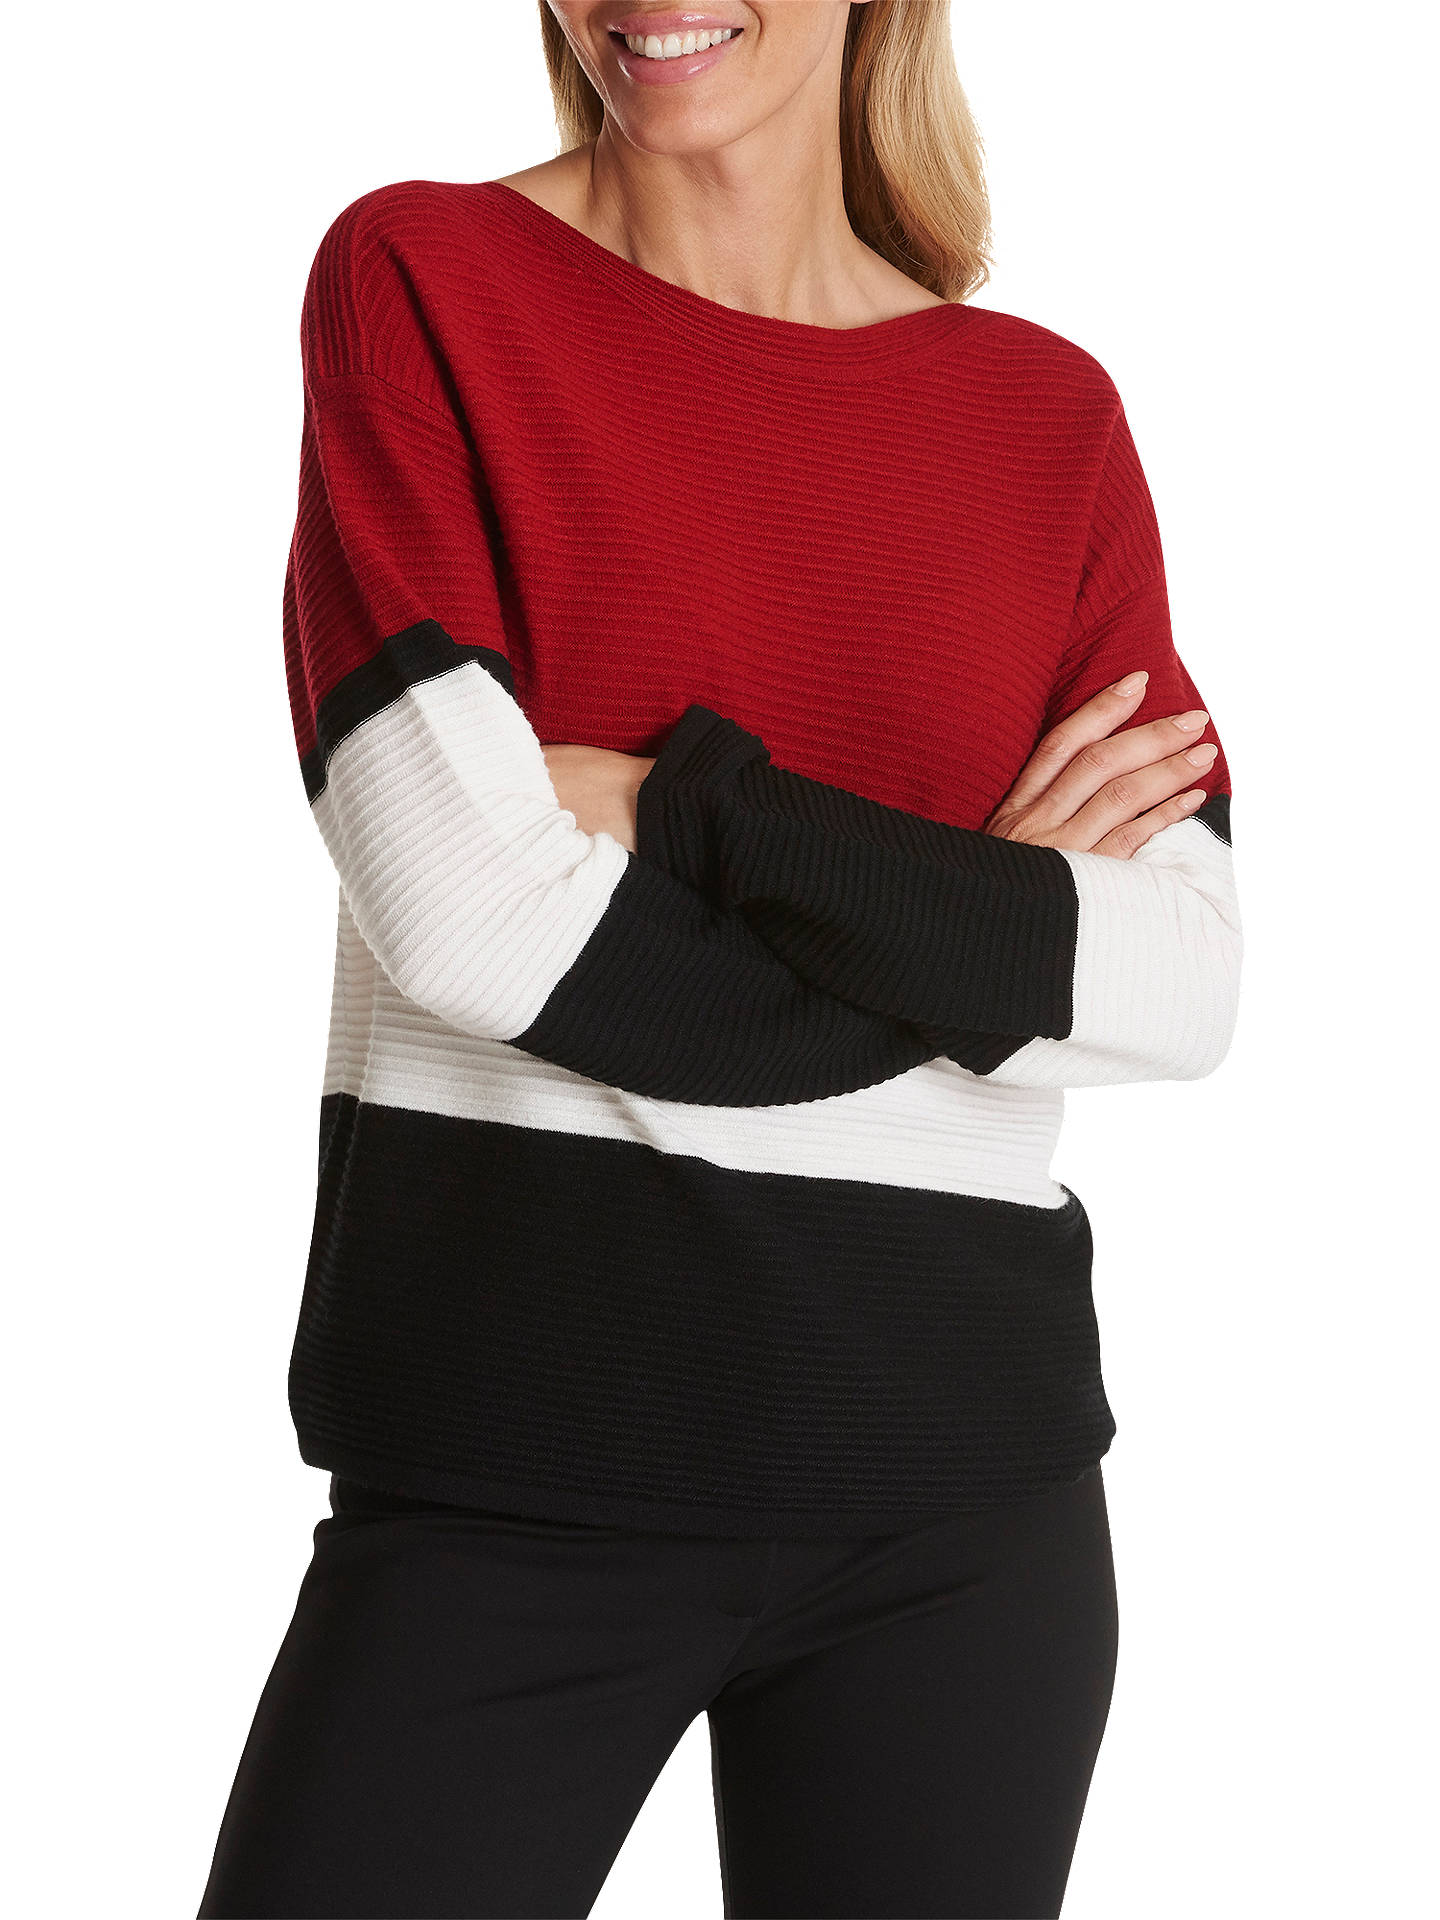 BuyBetty Barclay Striped Jumper, Dark Red/Black, 14 Online at johnlewis.com